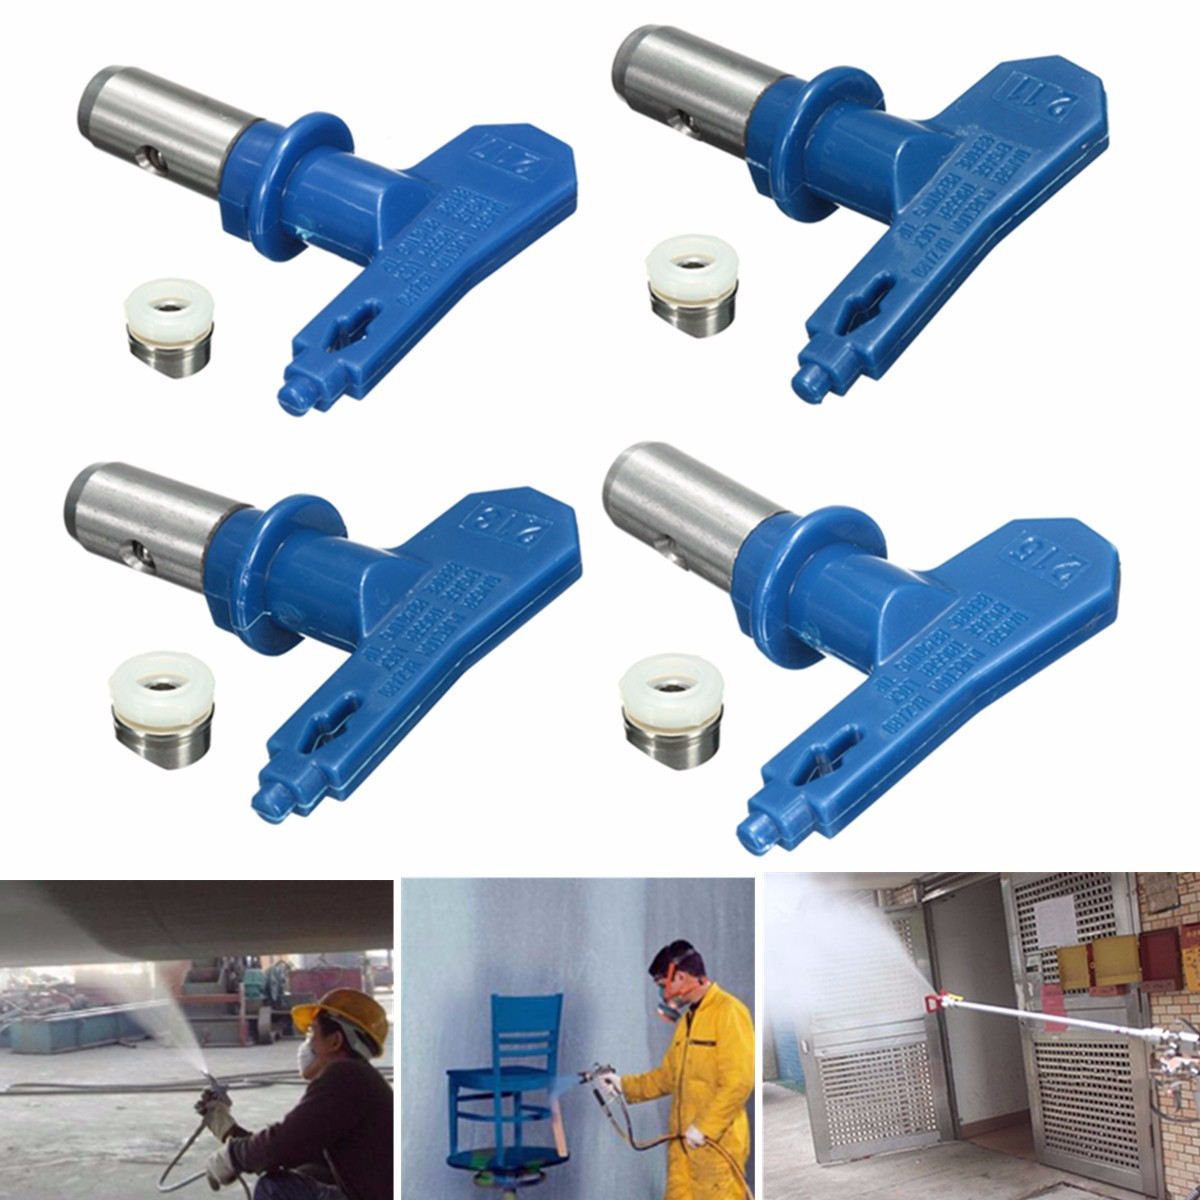 Blue 2 Series Airless Spray Tips Spray Nozzle Airless Spraying Machine Accessories For Home Graden Power Tools